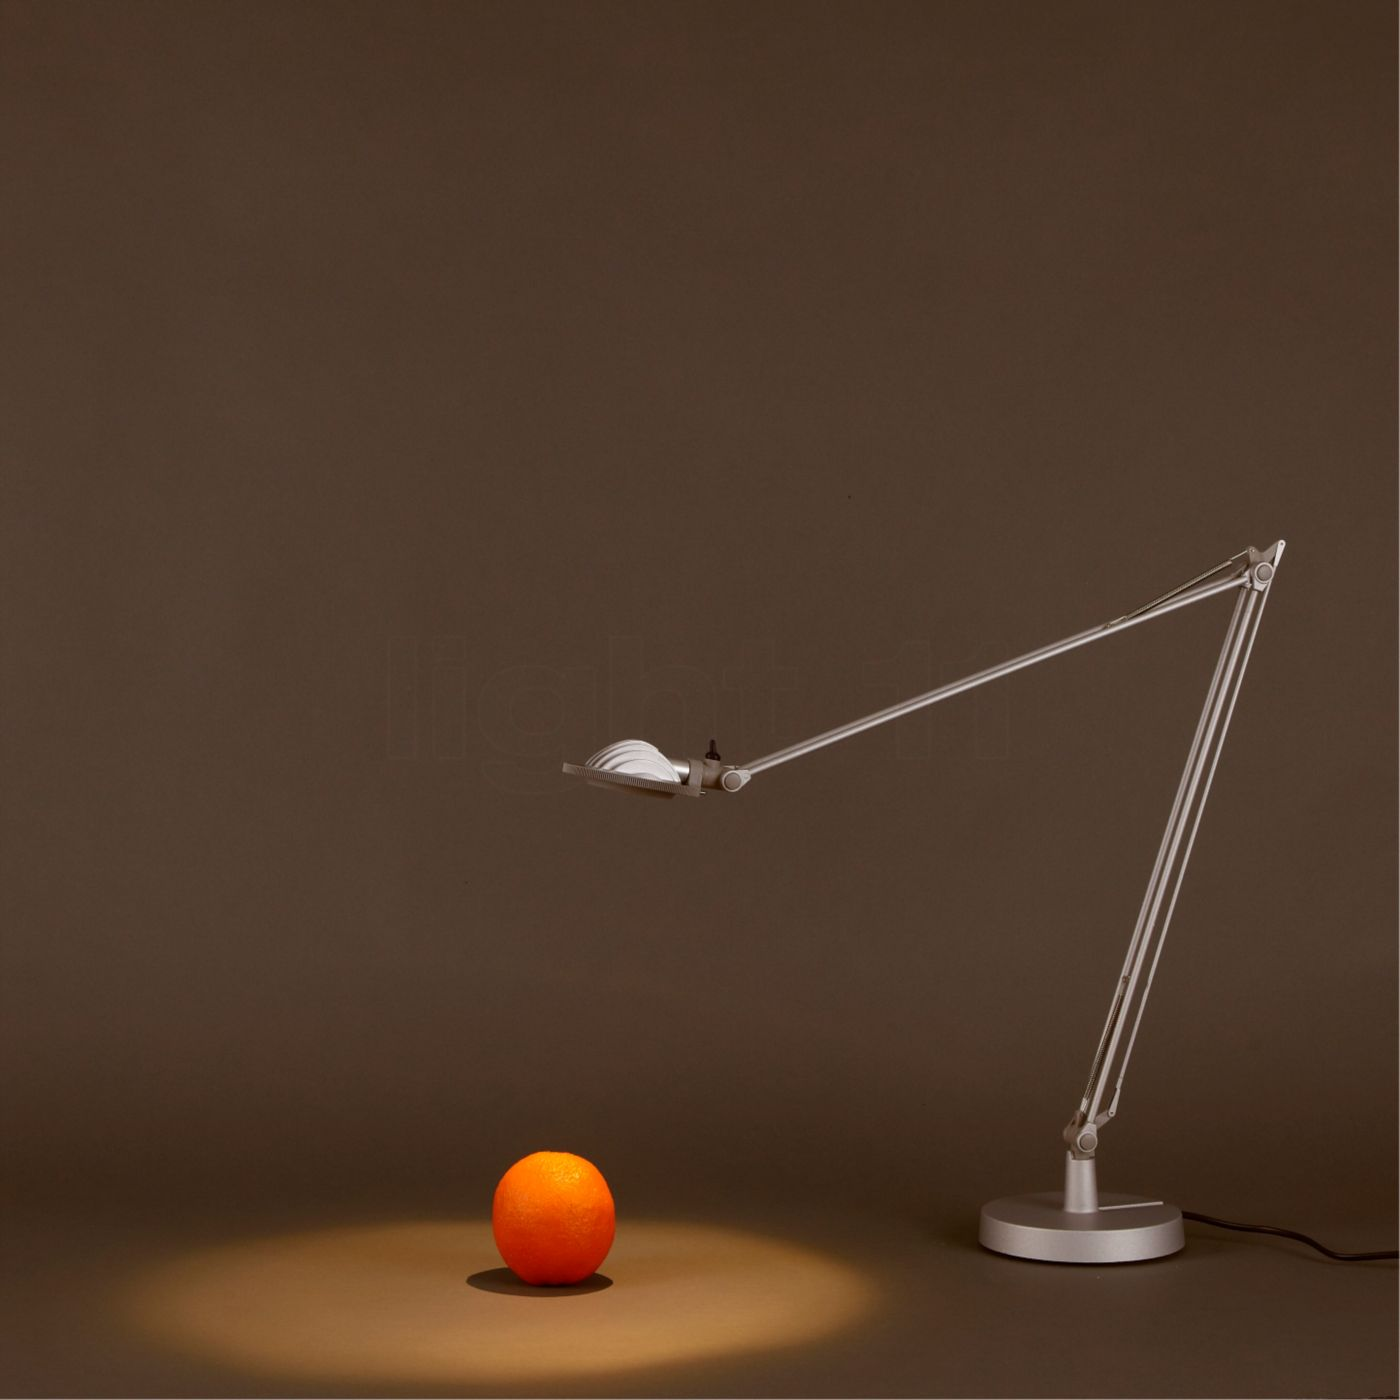 Luceplan berenice tavolo led desk lamps buy at light11 mozeypictures Gallery